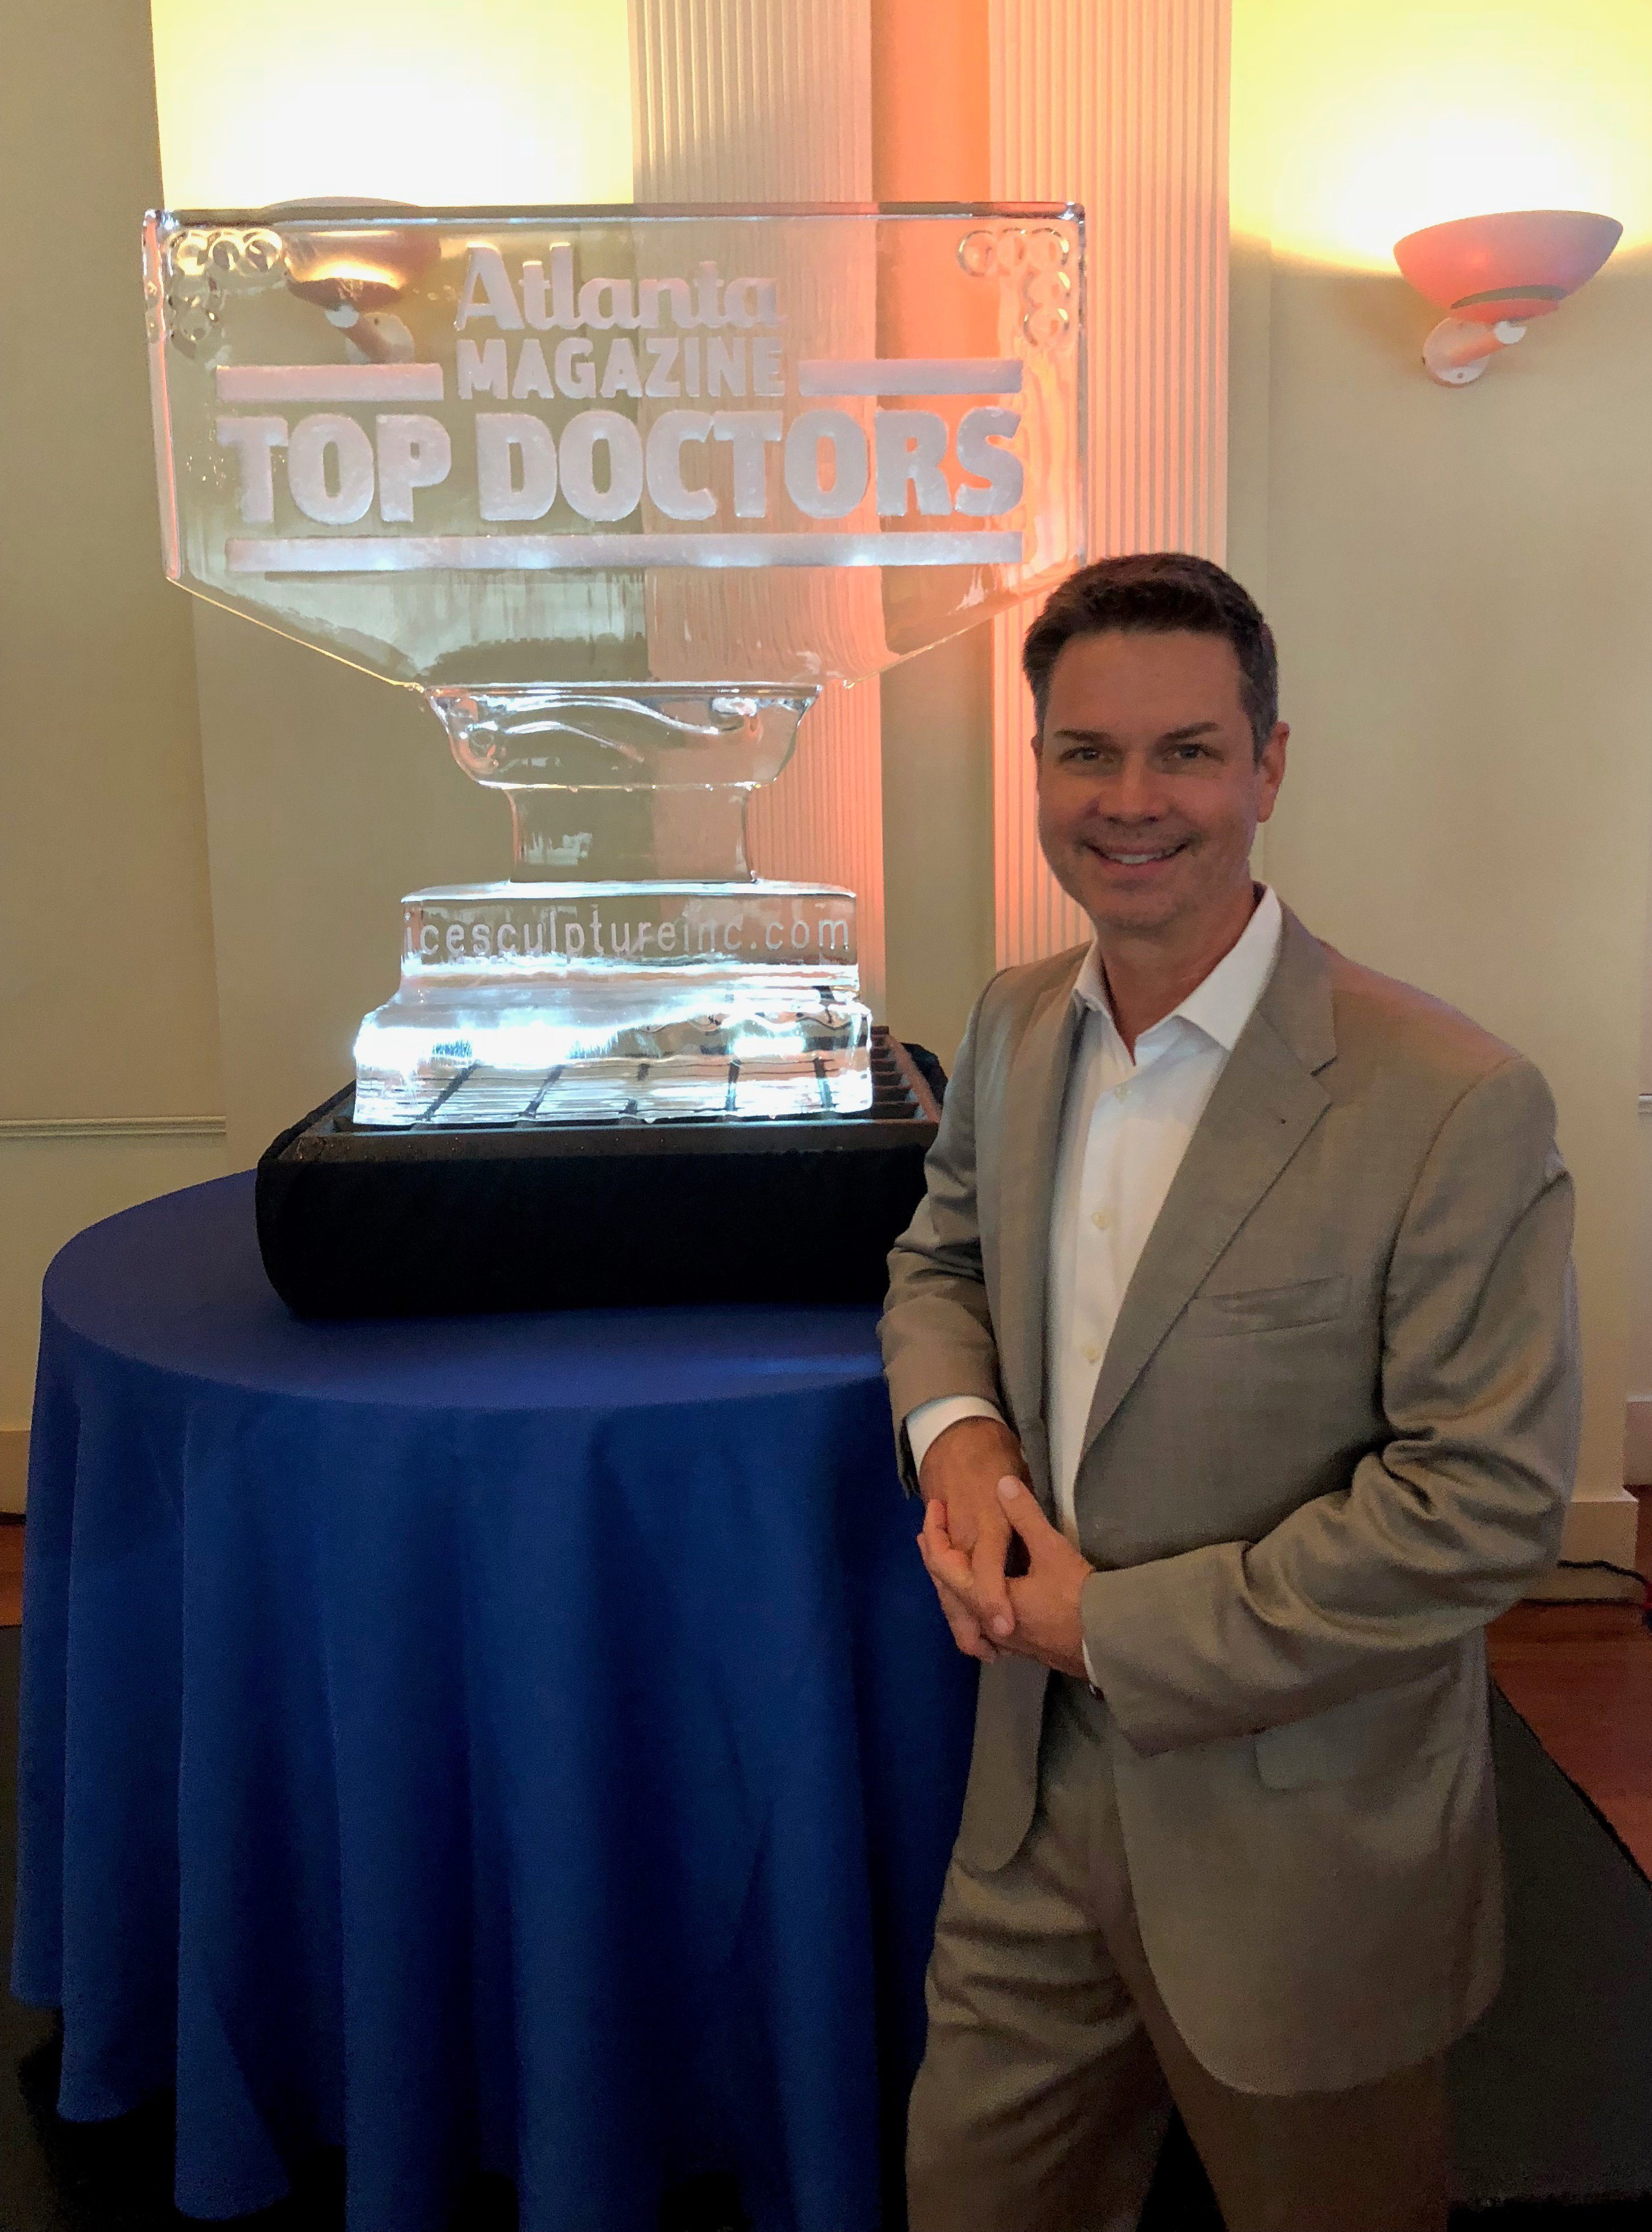 Atlanta Magazine Top Doctors Dr. Burke Robinson